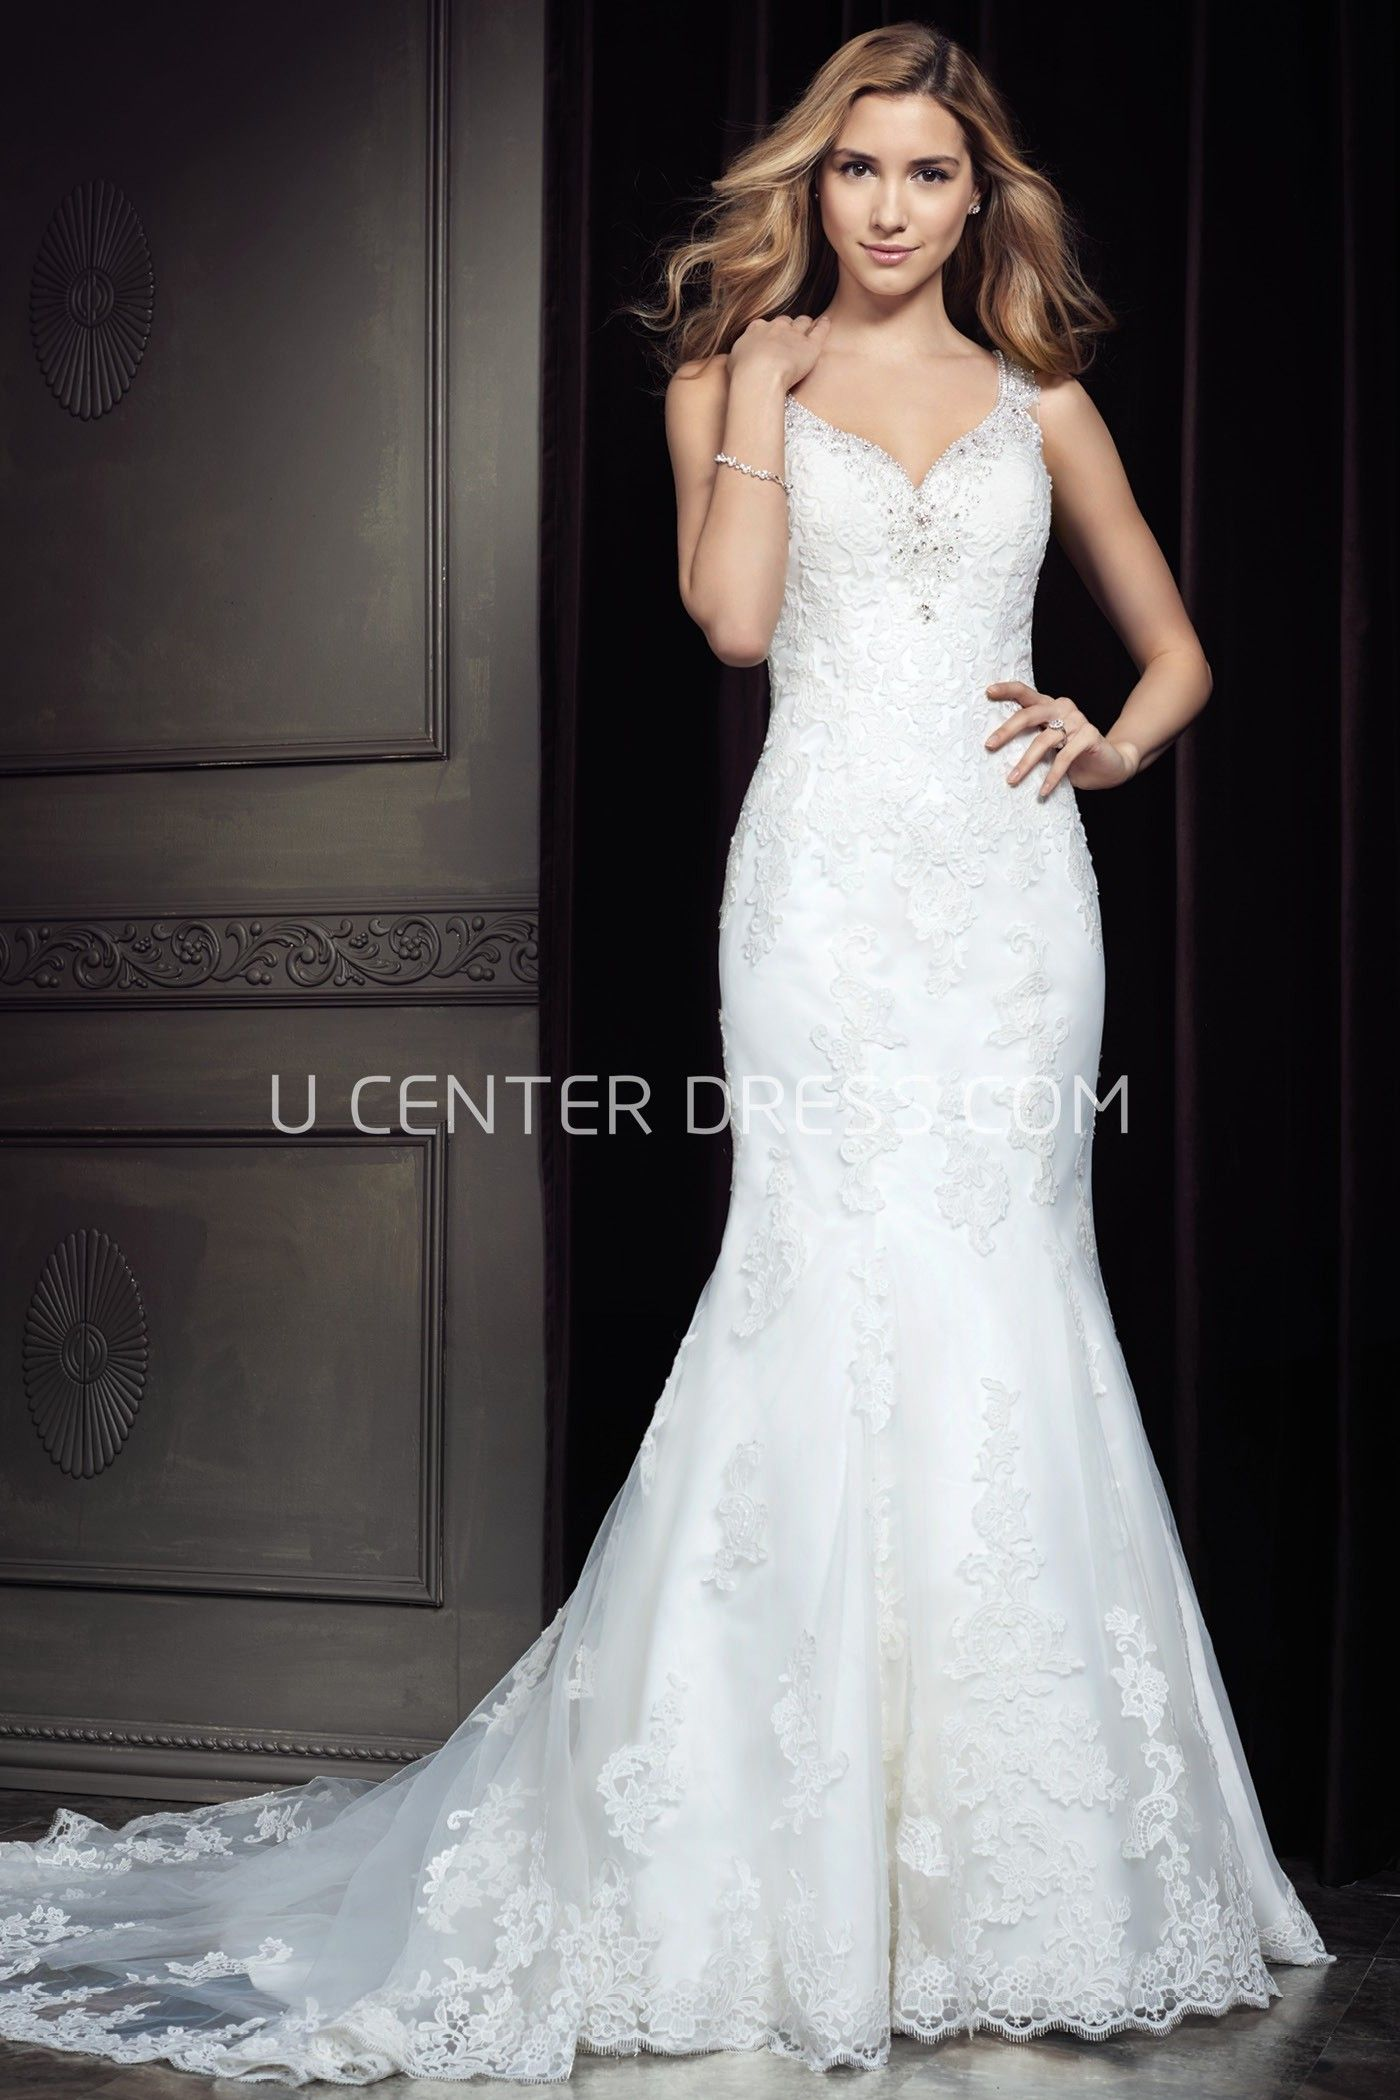 Usamazing verna lace mermaid wedding dress with shoulder